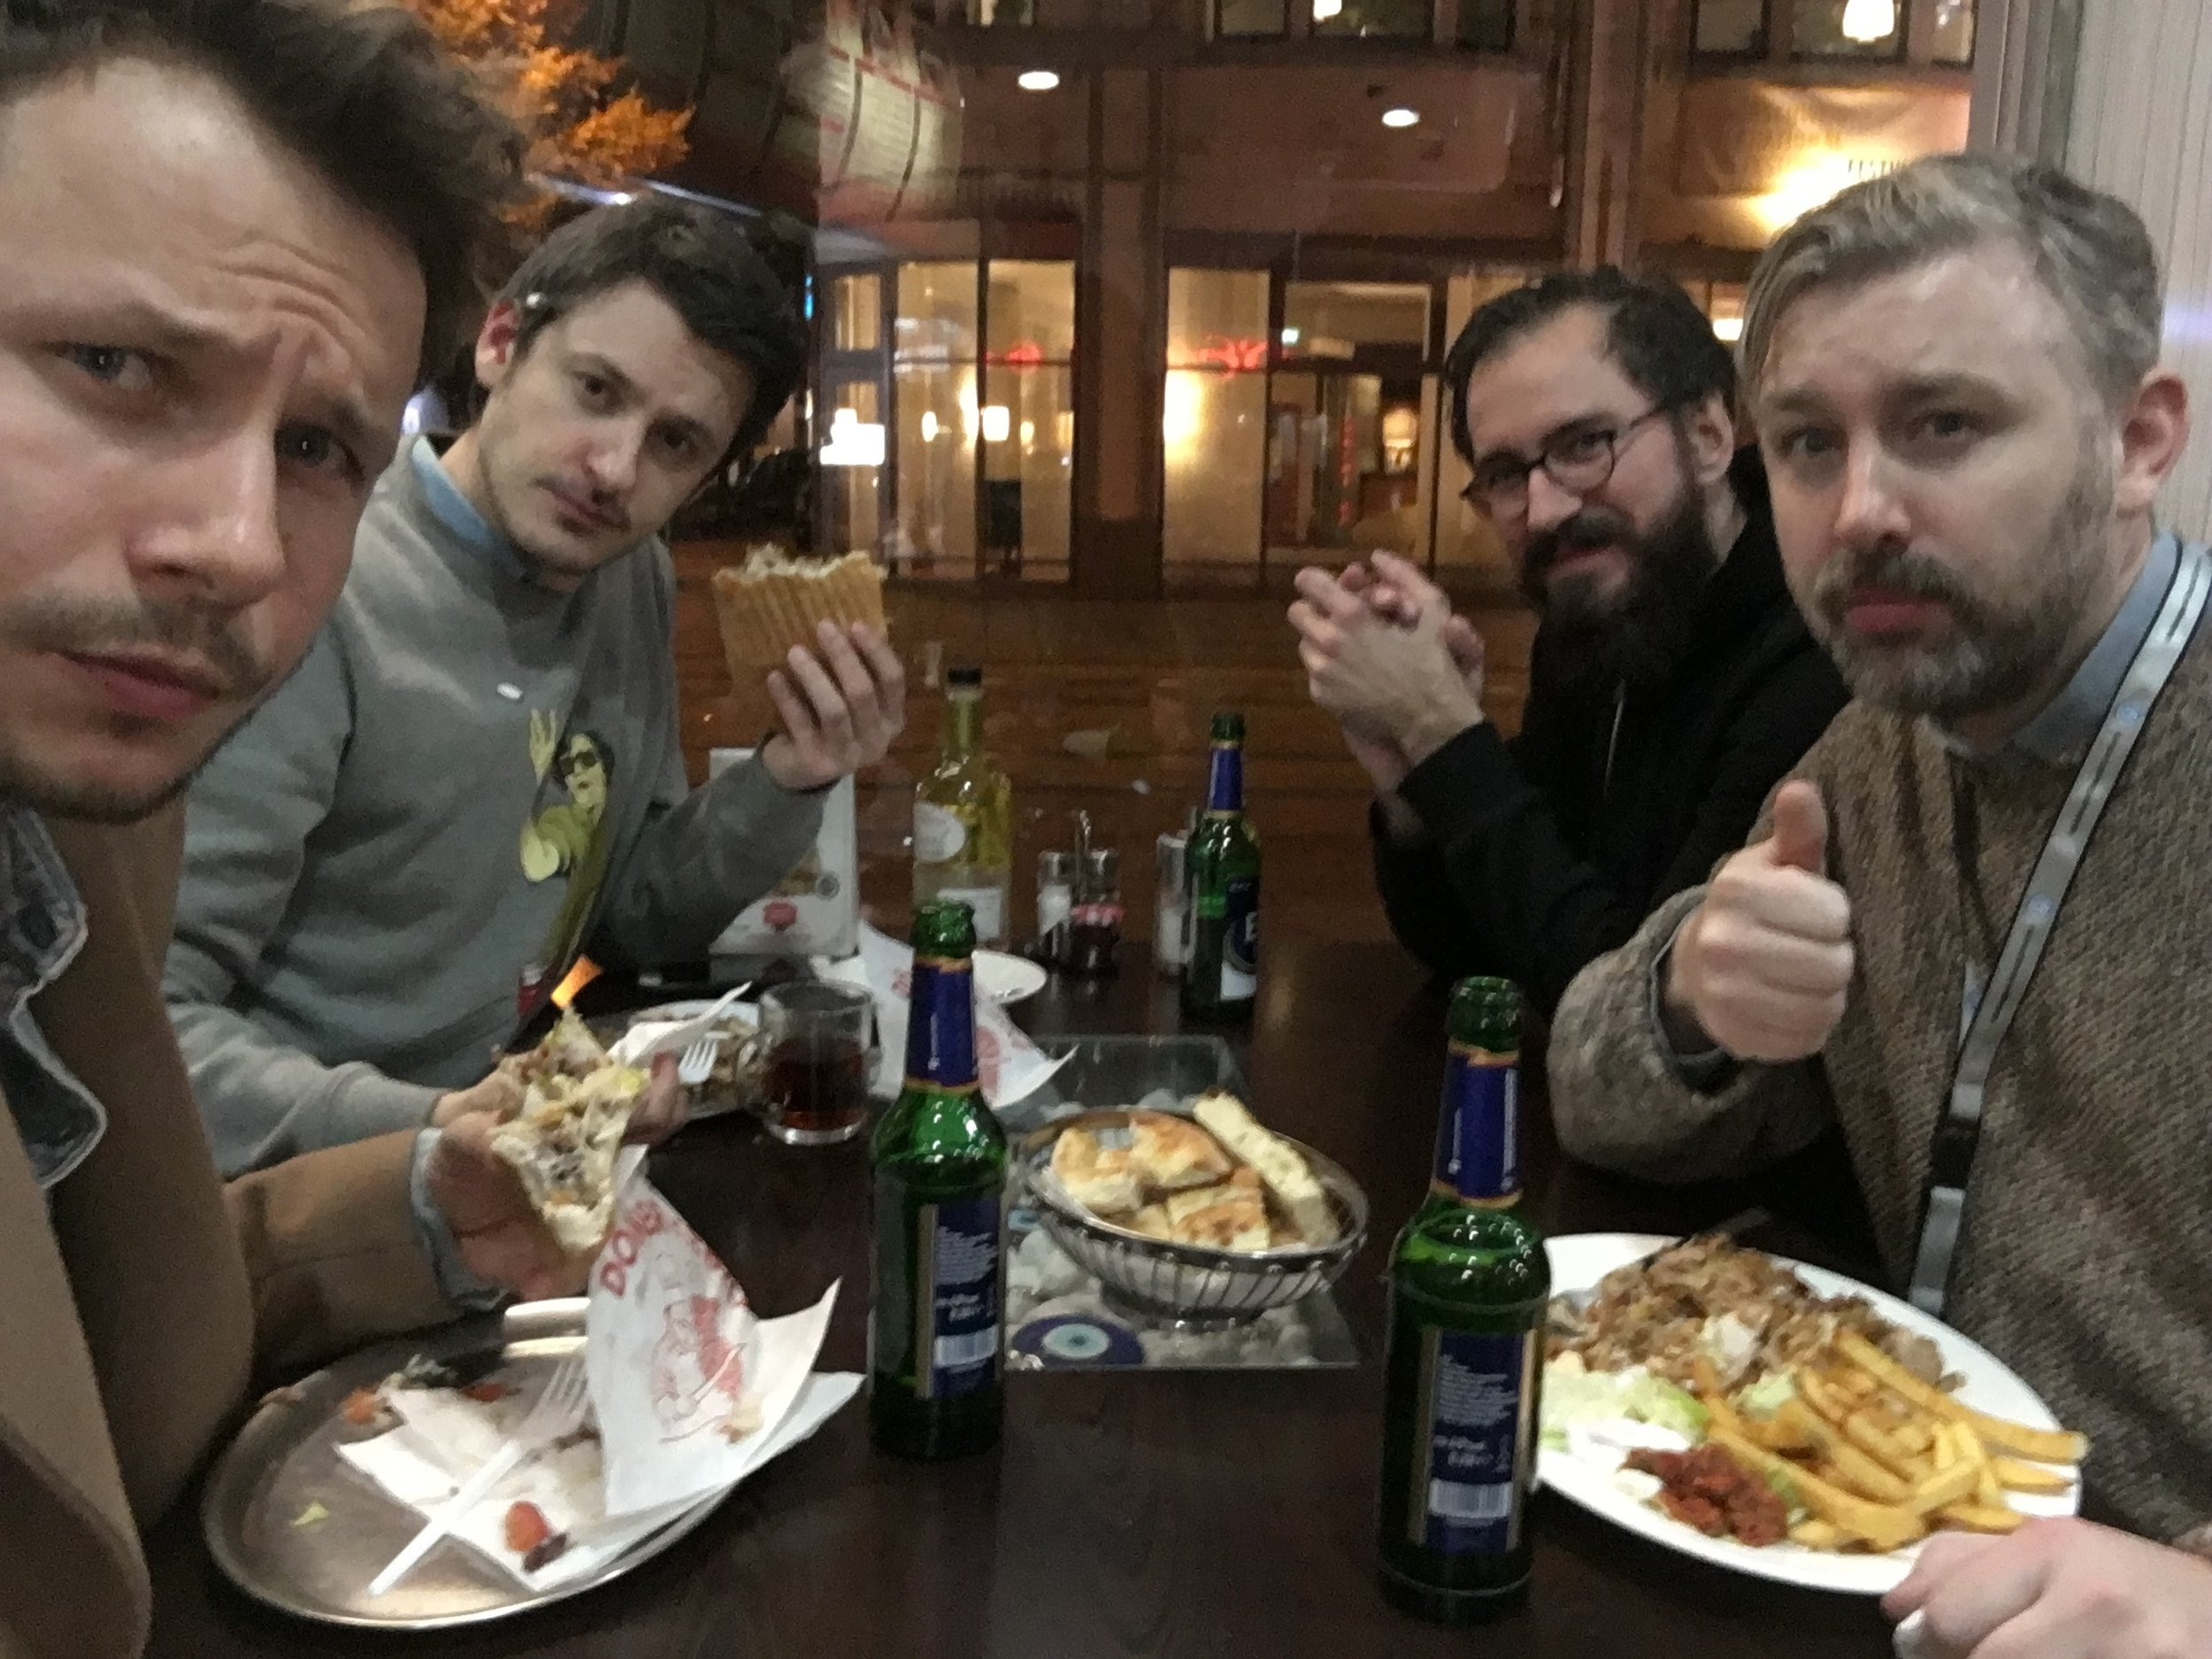 Catching a late night kebab with director Ilya Naishuller after his   Q&A screening of Hardcore Henry and   Floating Skyscrapers actor Mateusz Banasiuk.